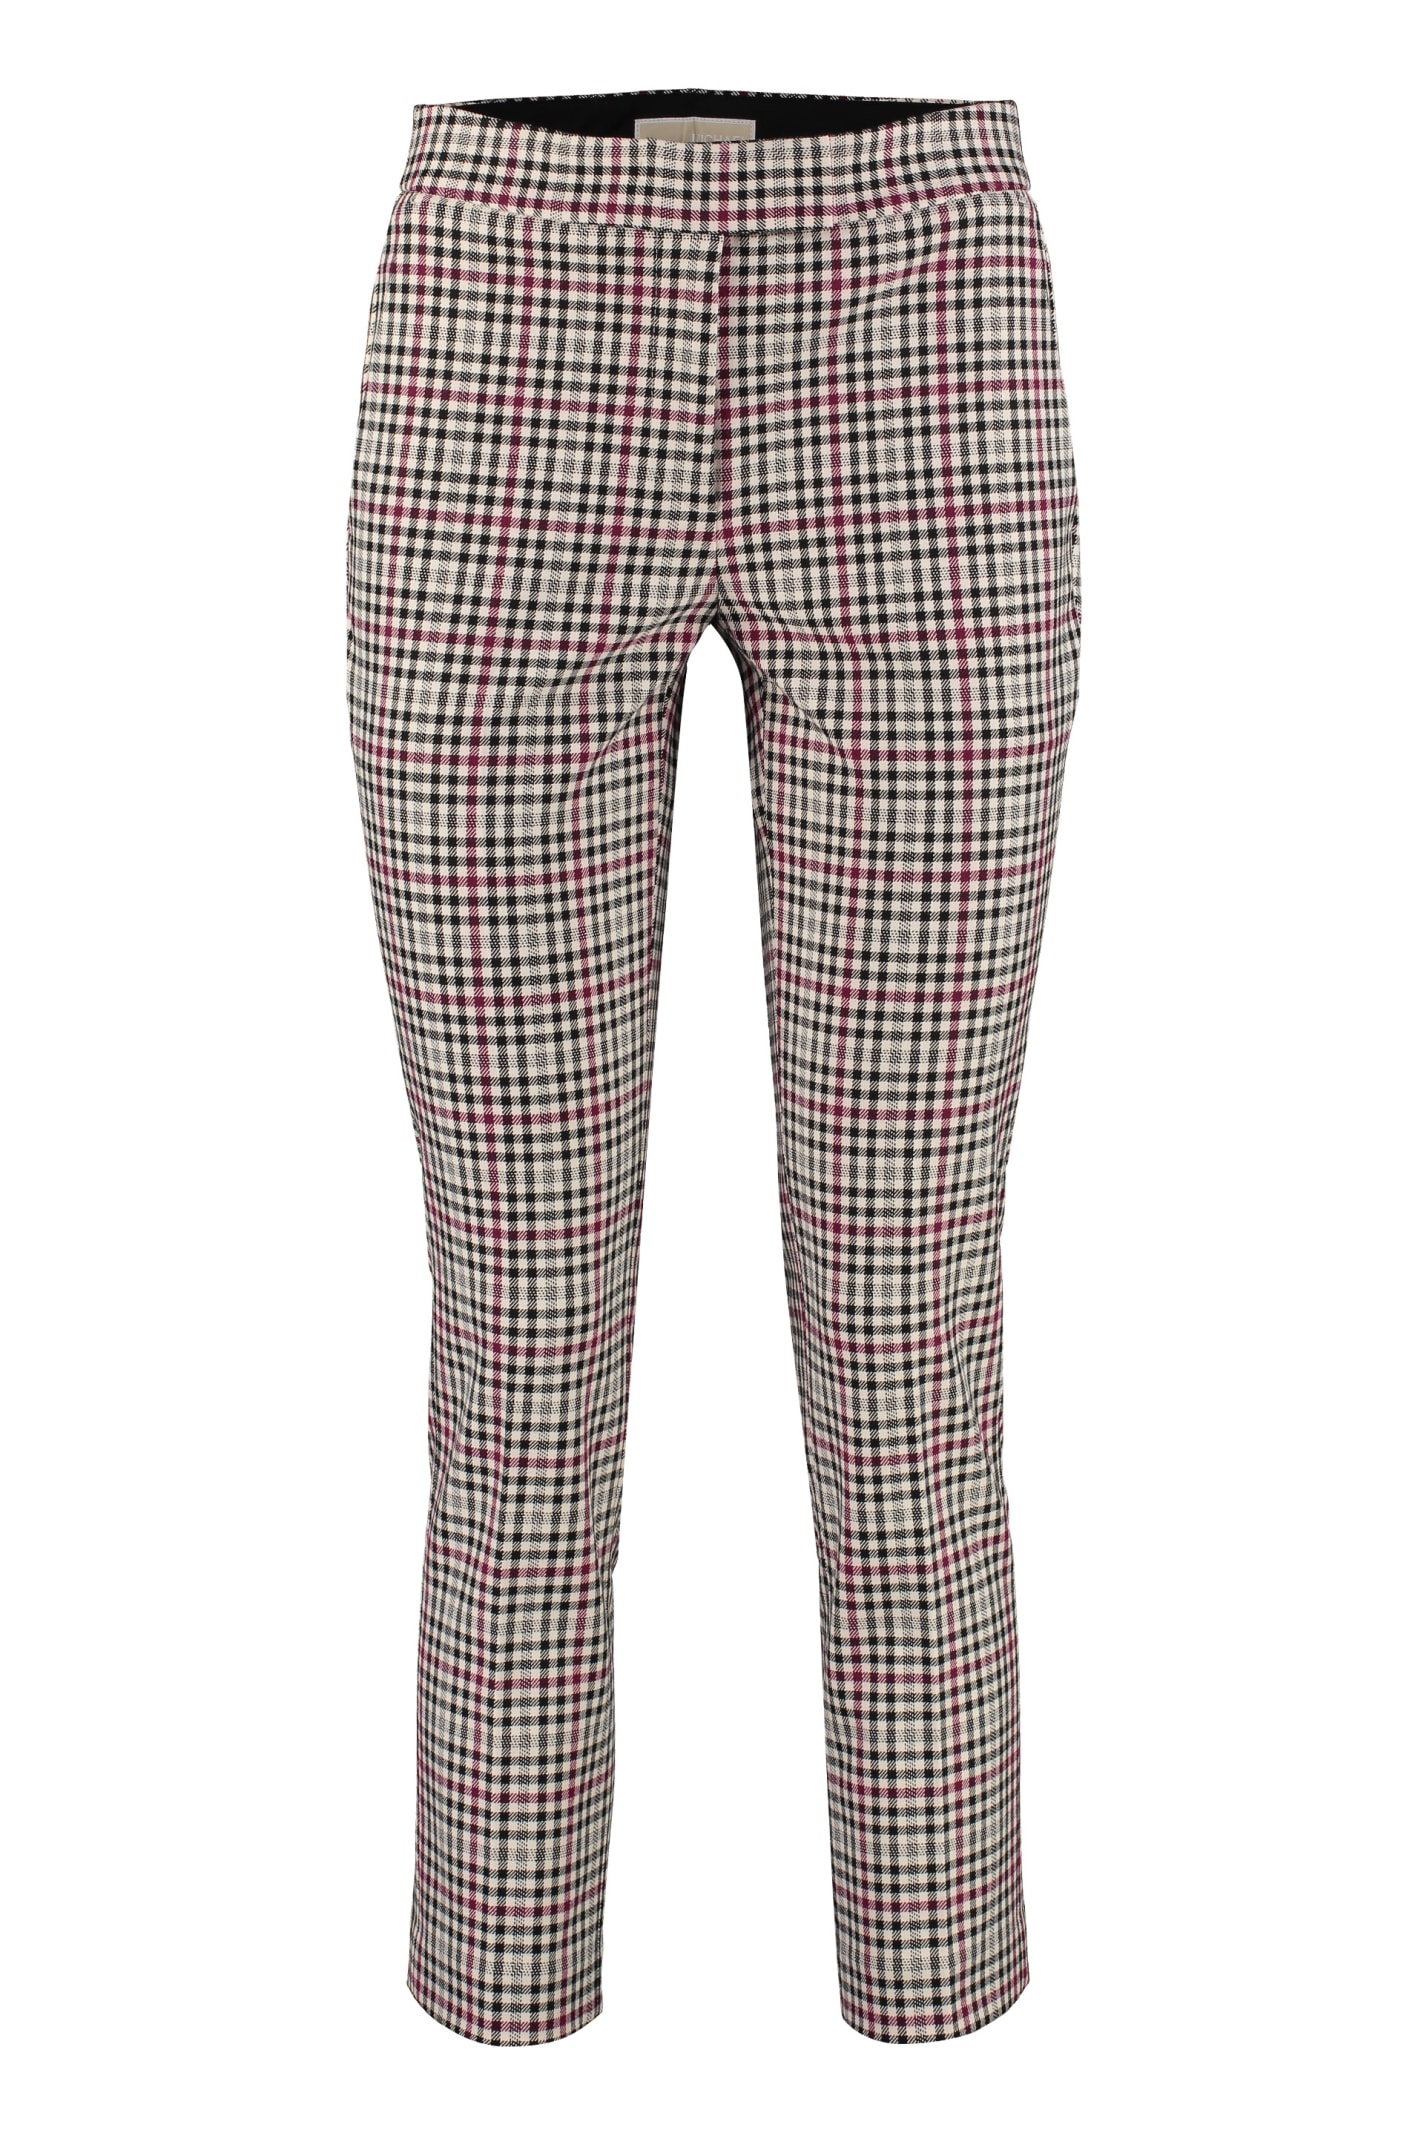 MICHAEL Michael Kors Stretch Fabric Cropped Trousers